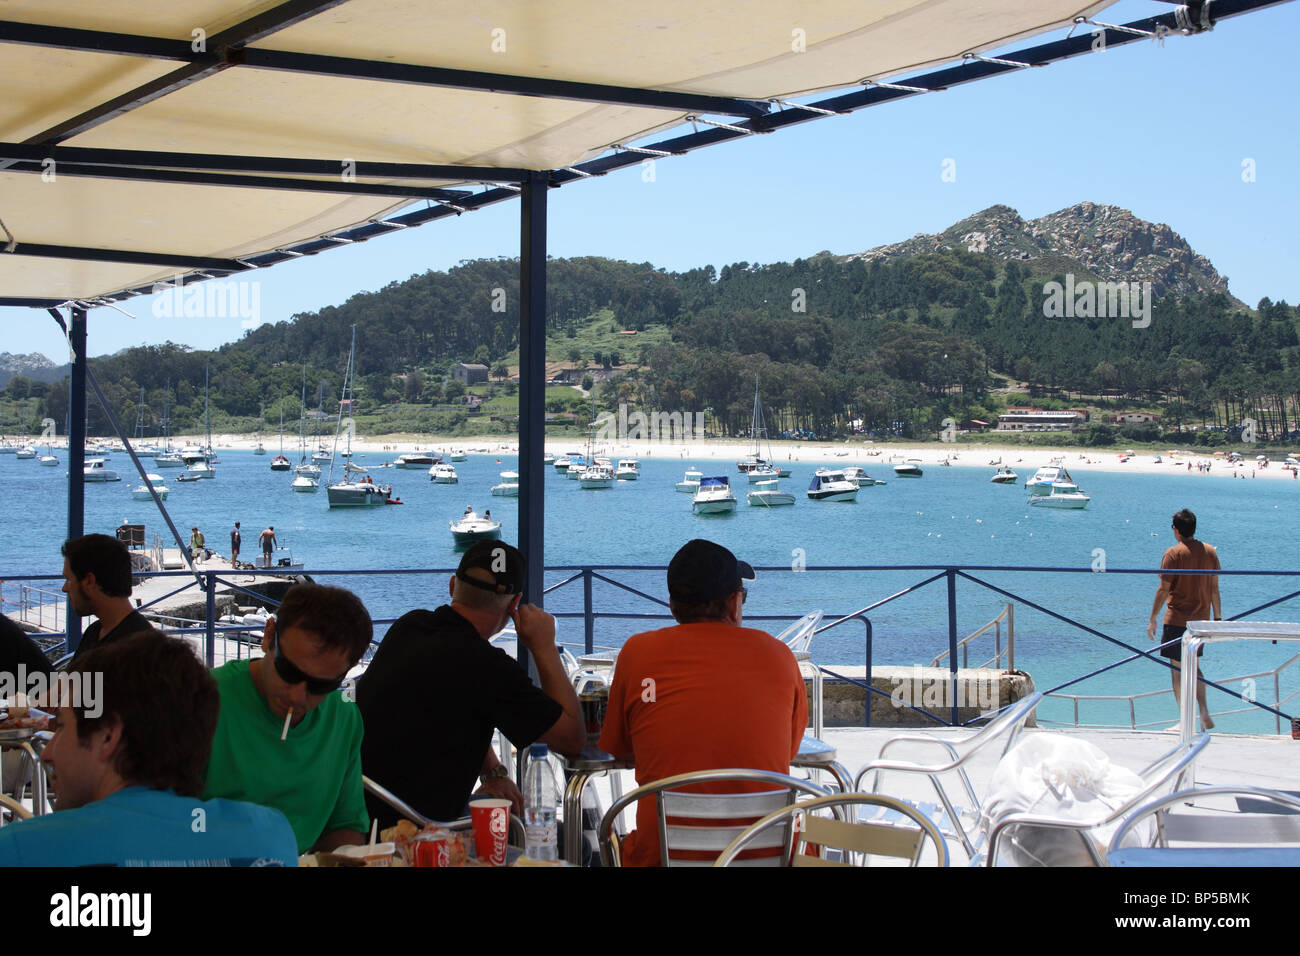 People at outdoor cafe tables of restaurant on beach, Isla de Monte Faro, Islas Cies, Vigo, Galicia, Spain, beach - Stock Image